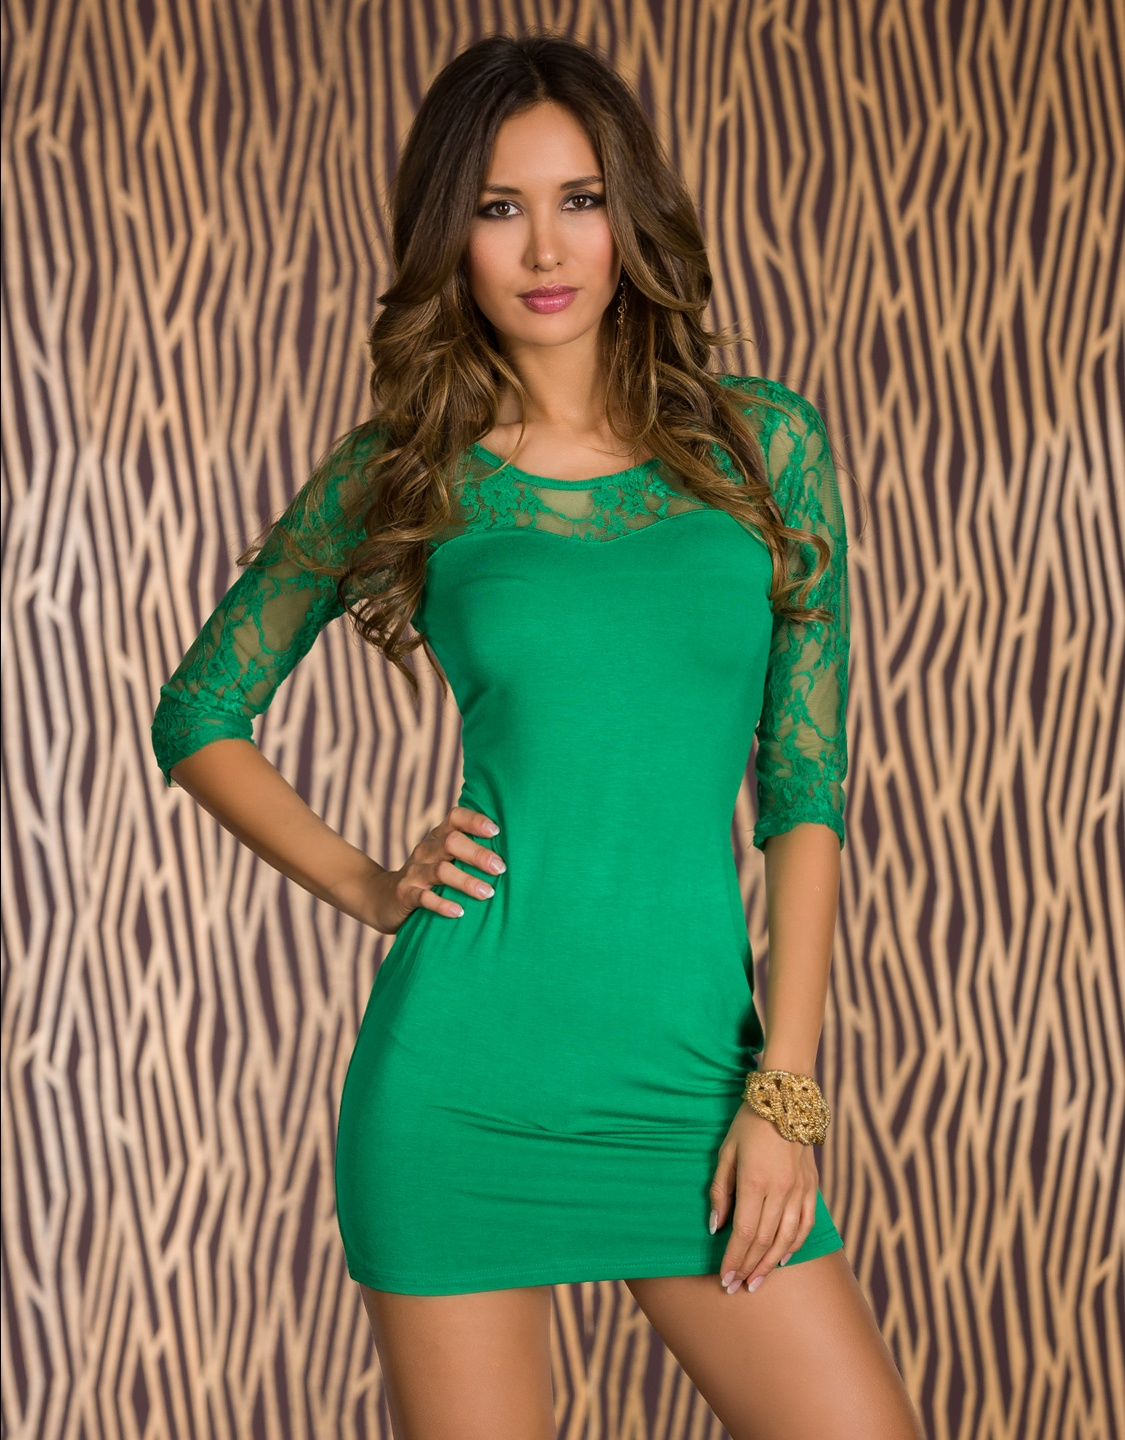 Green Lace 3/4 Sleeves Short Dress